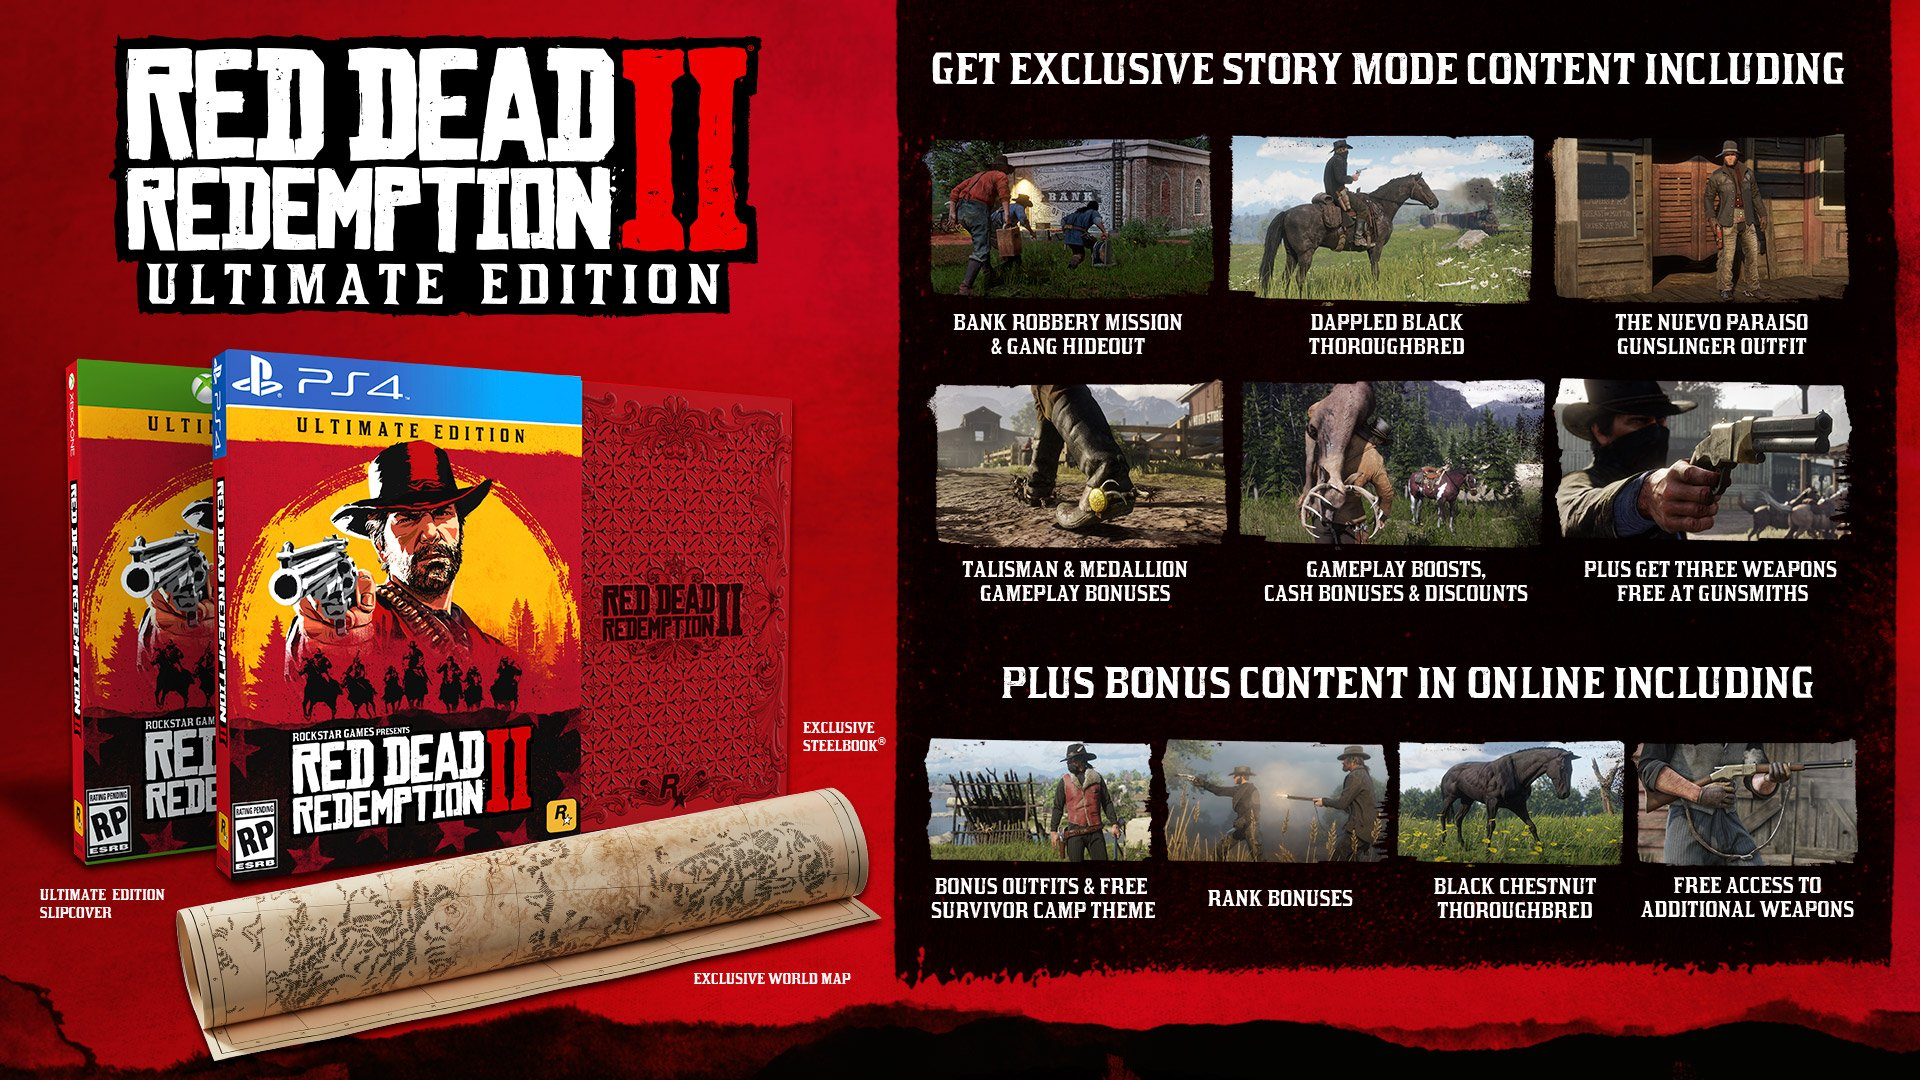 red dead redemption 2 ultimate edition digital download